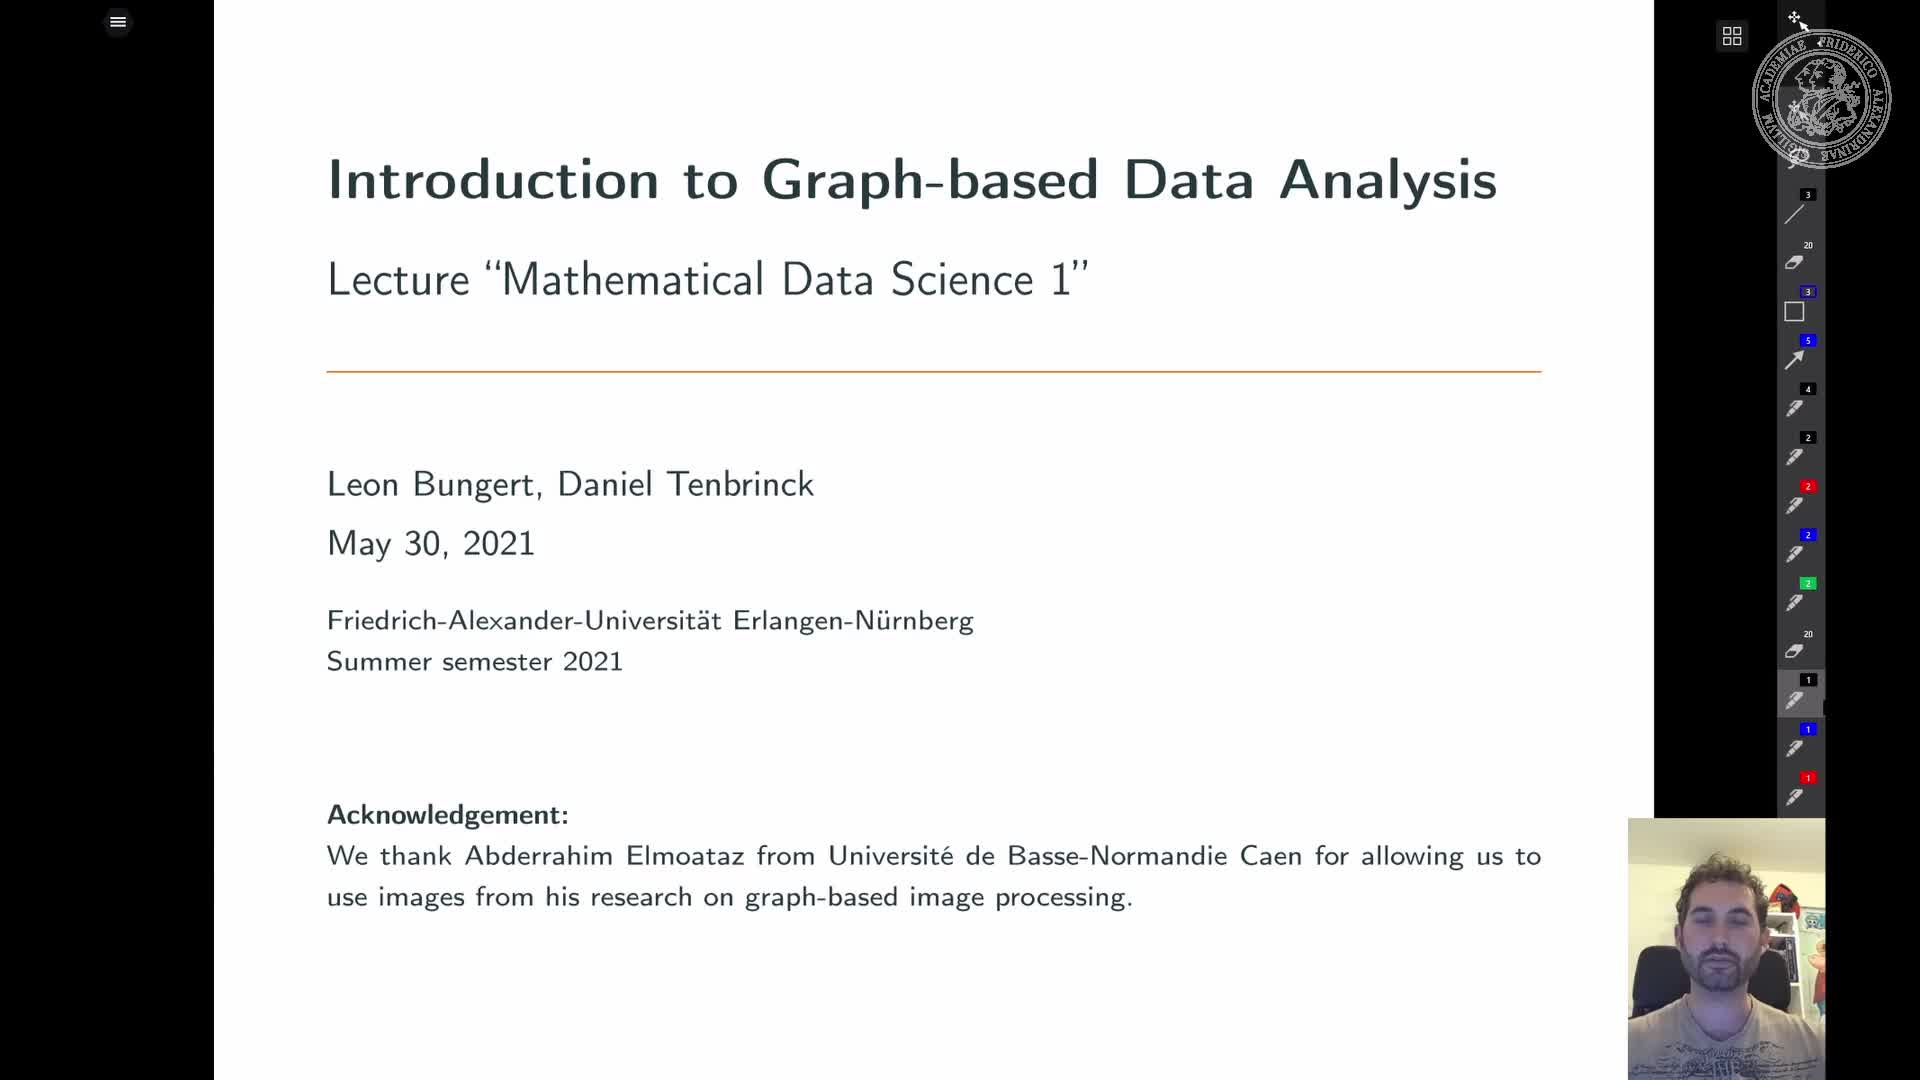 Introduction to Graph-based Data Analysis preview image